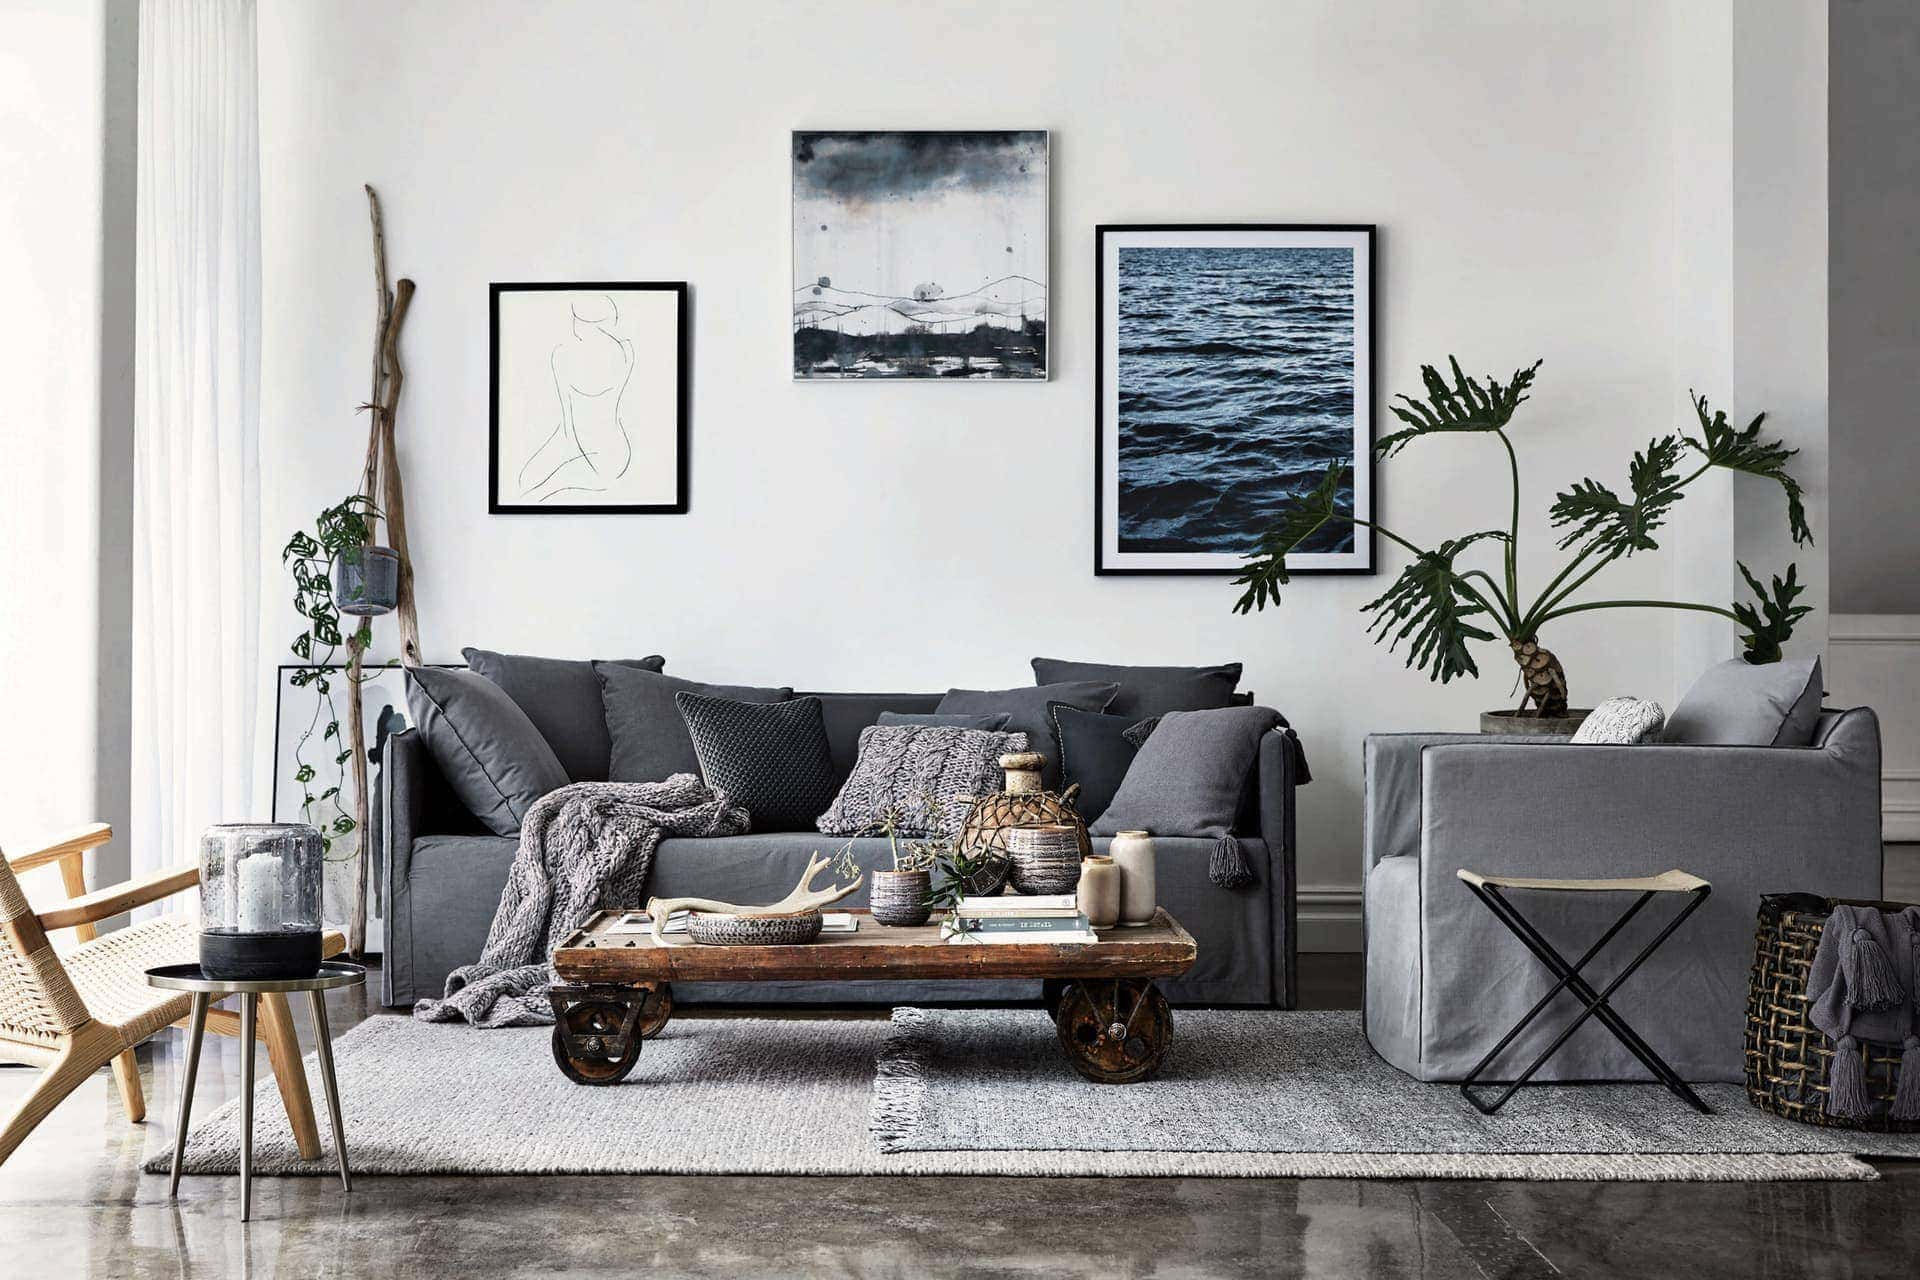 ... Industrial Interior Design. Industrial Coastal Living Room With Grey  Slipcover Sofa And Industrial Coffee Table With Wheels